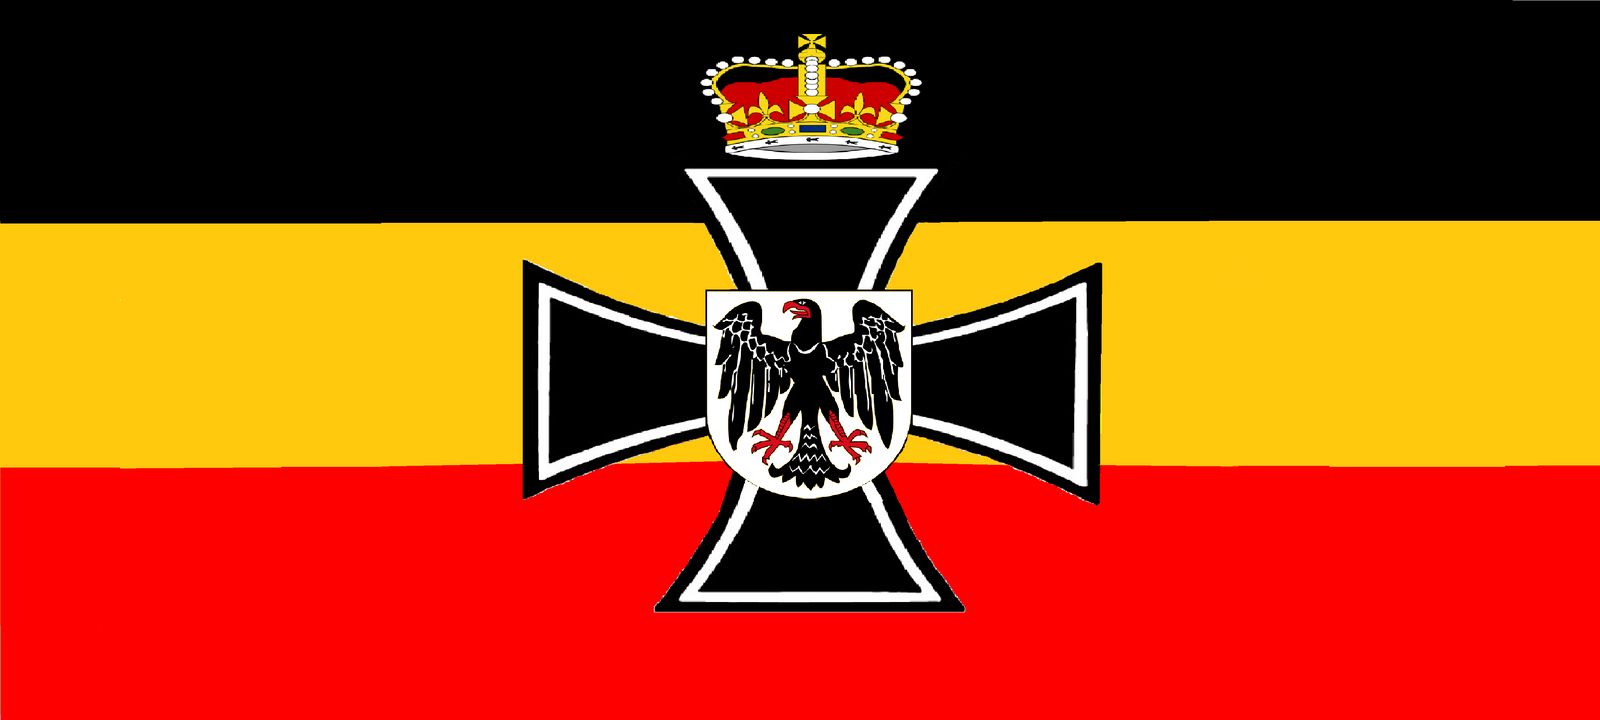 flag of the central german empire by wolfmoon25 on deviantart